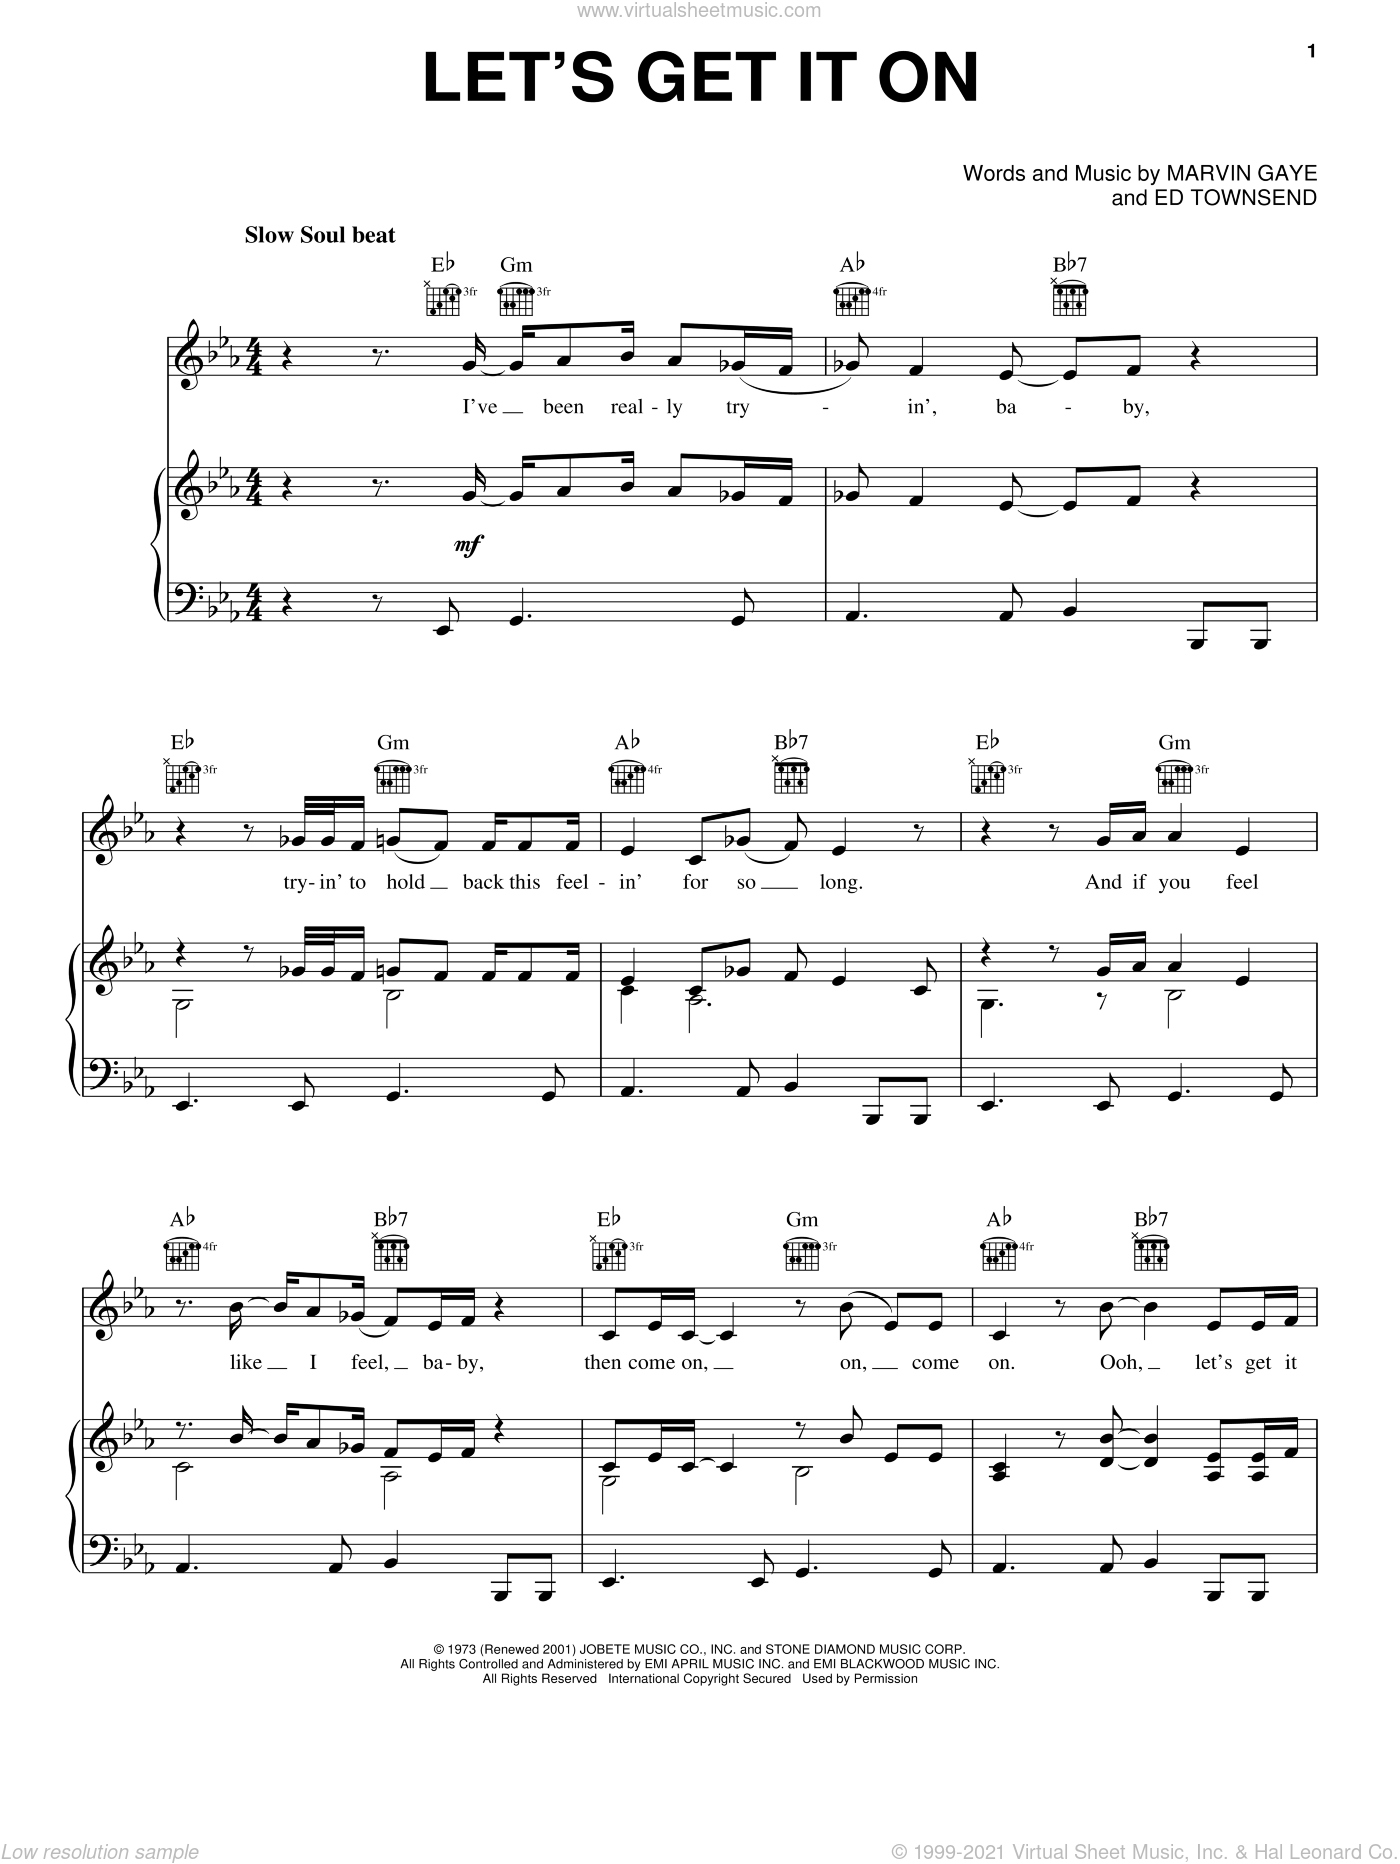 Let's Get It On sheet music for voice, piano or guitar by Marvin Gaye and Ed Townsend, intermediate skill level